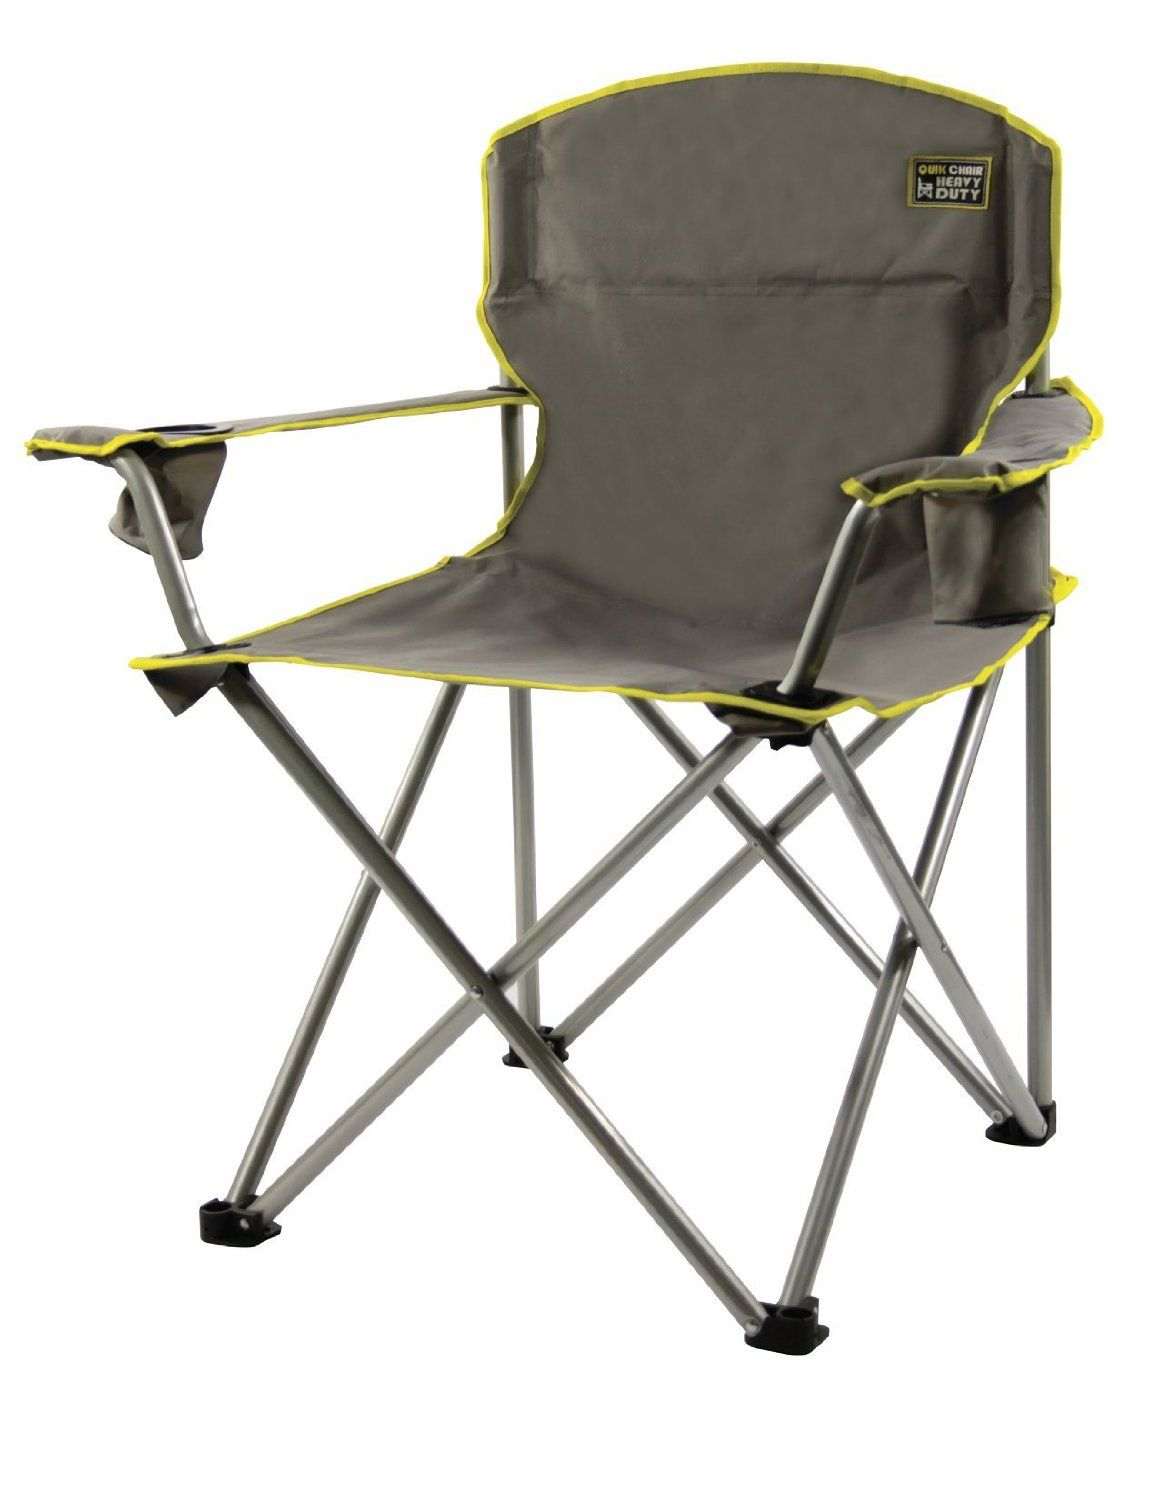 Folding camping chair bag - Quik Chair Heavy Duty 1 4 Ton Capacity Folding Chair With Carrying Bag Grey